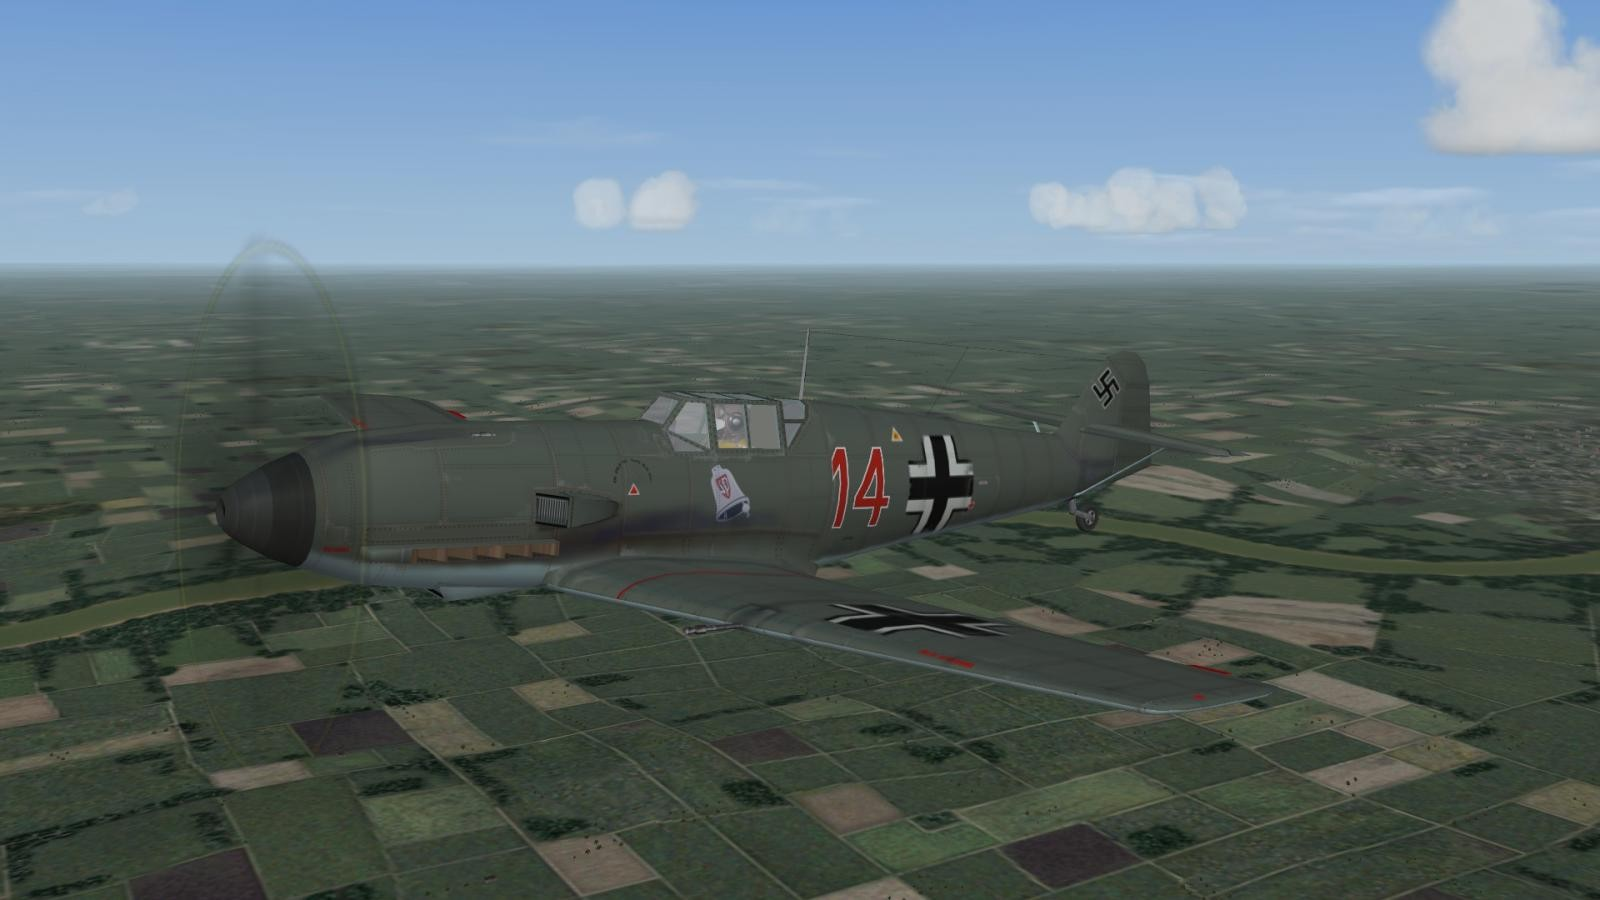 Bf 109 E-1, II./JG 3, 1939/40 (well, it's a E-3 :D)